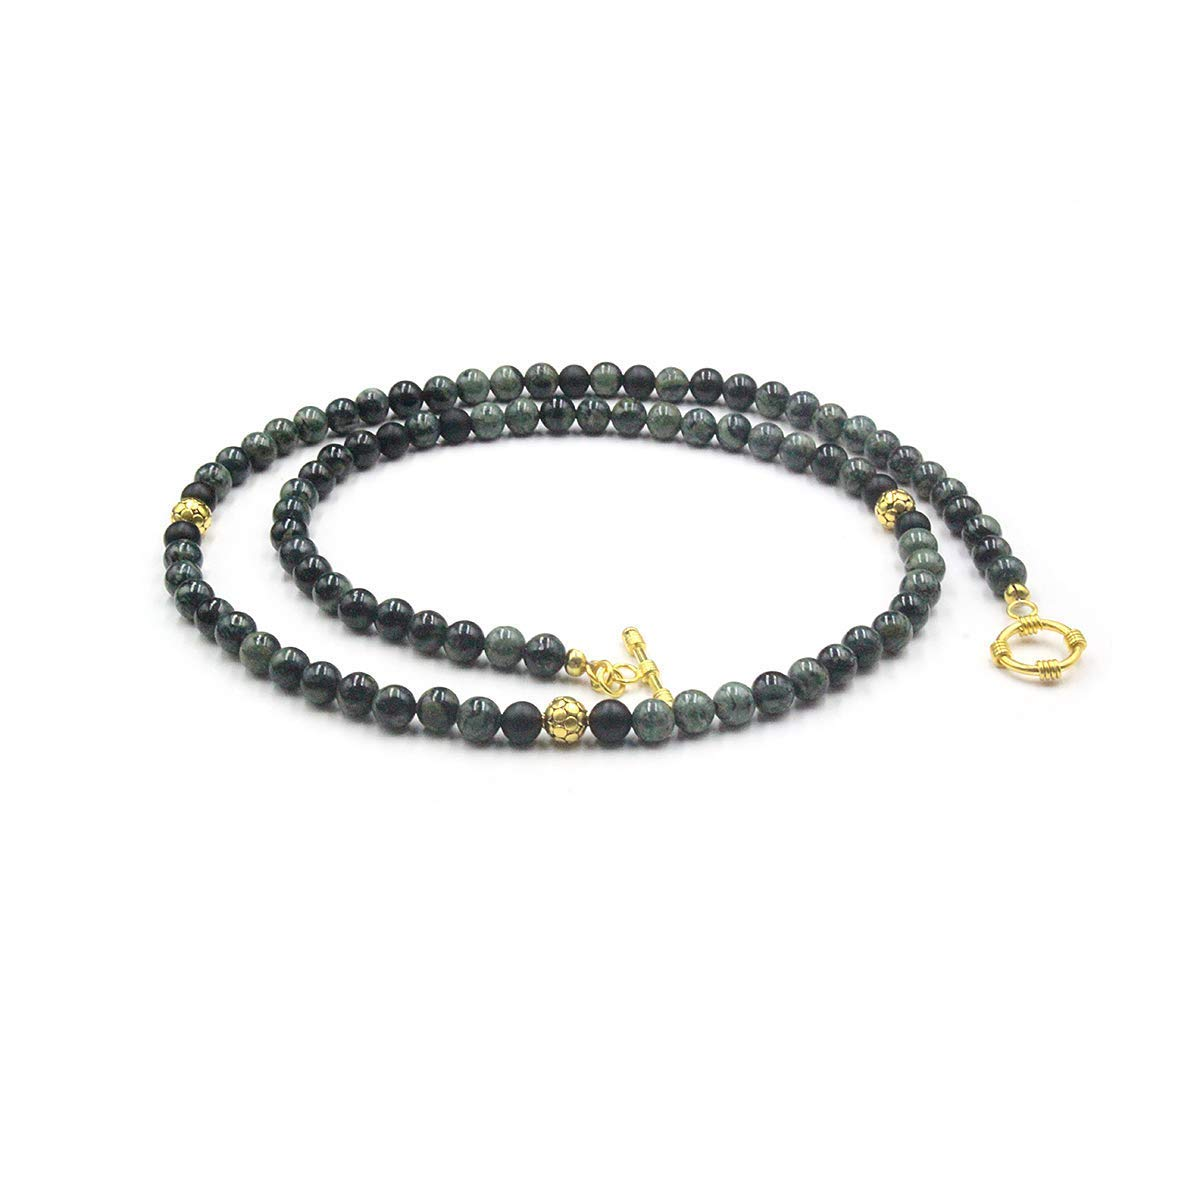 Dark Green Jade Necklace and Plated 22K Beads Gold National Recommended uniform free shipping Necklac